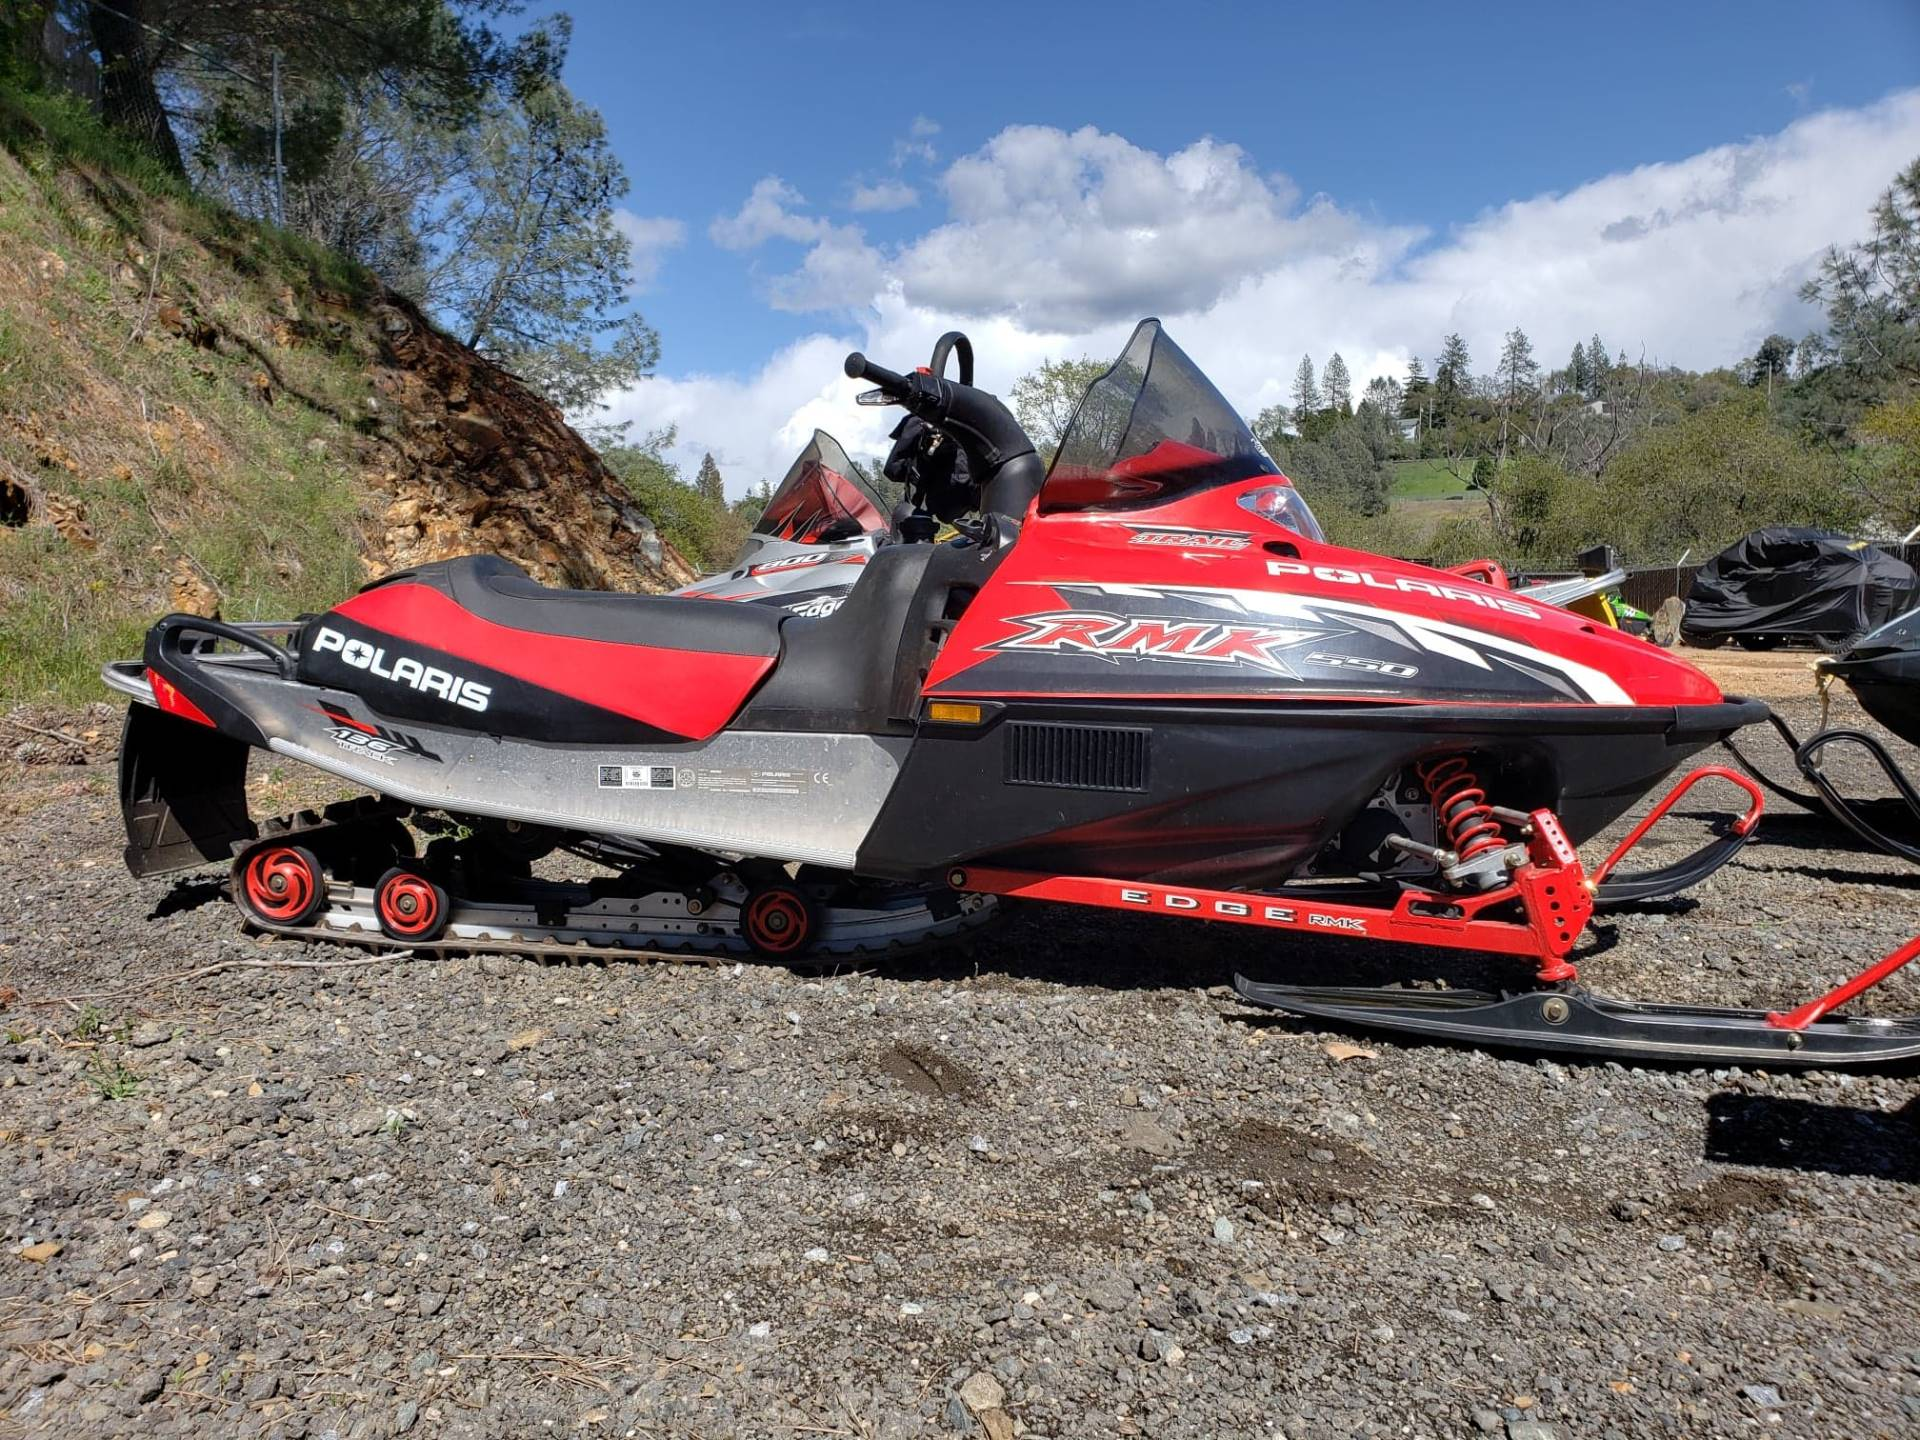 2006 Polaris Trail  RMK in Auburn, California - Photo 1